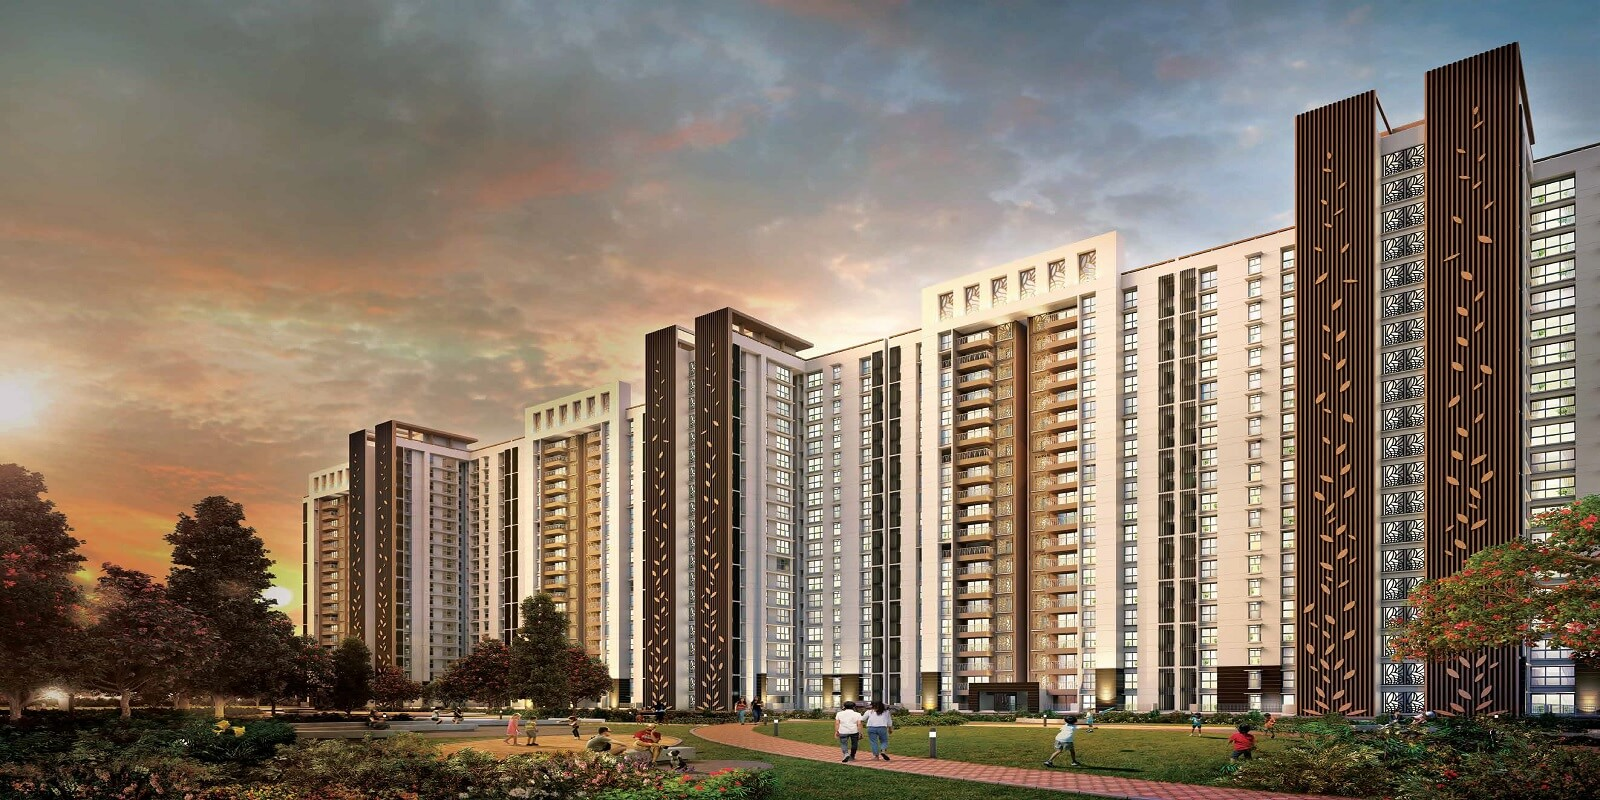 lodha upper thane greenville a to i project large image2